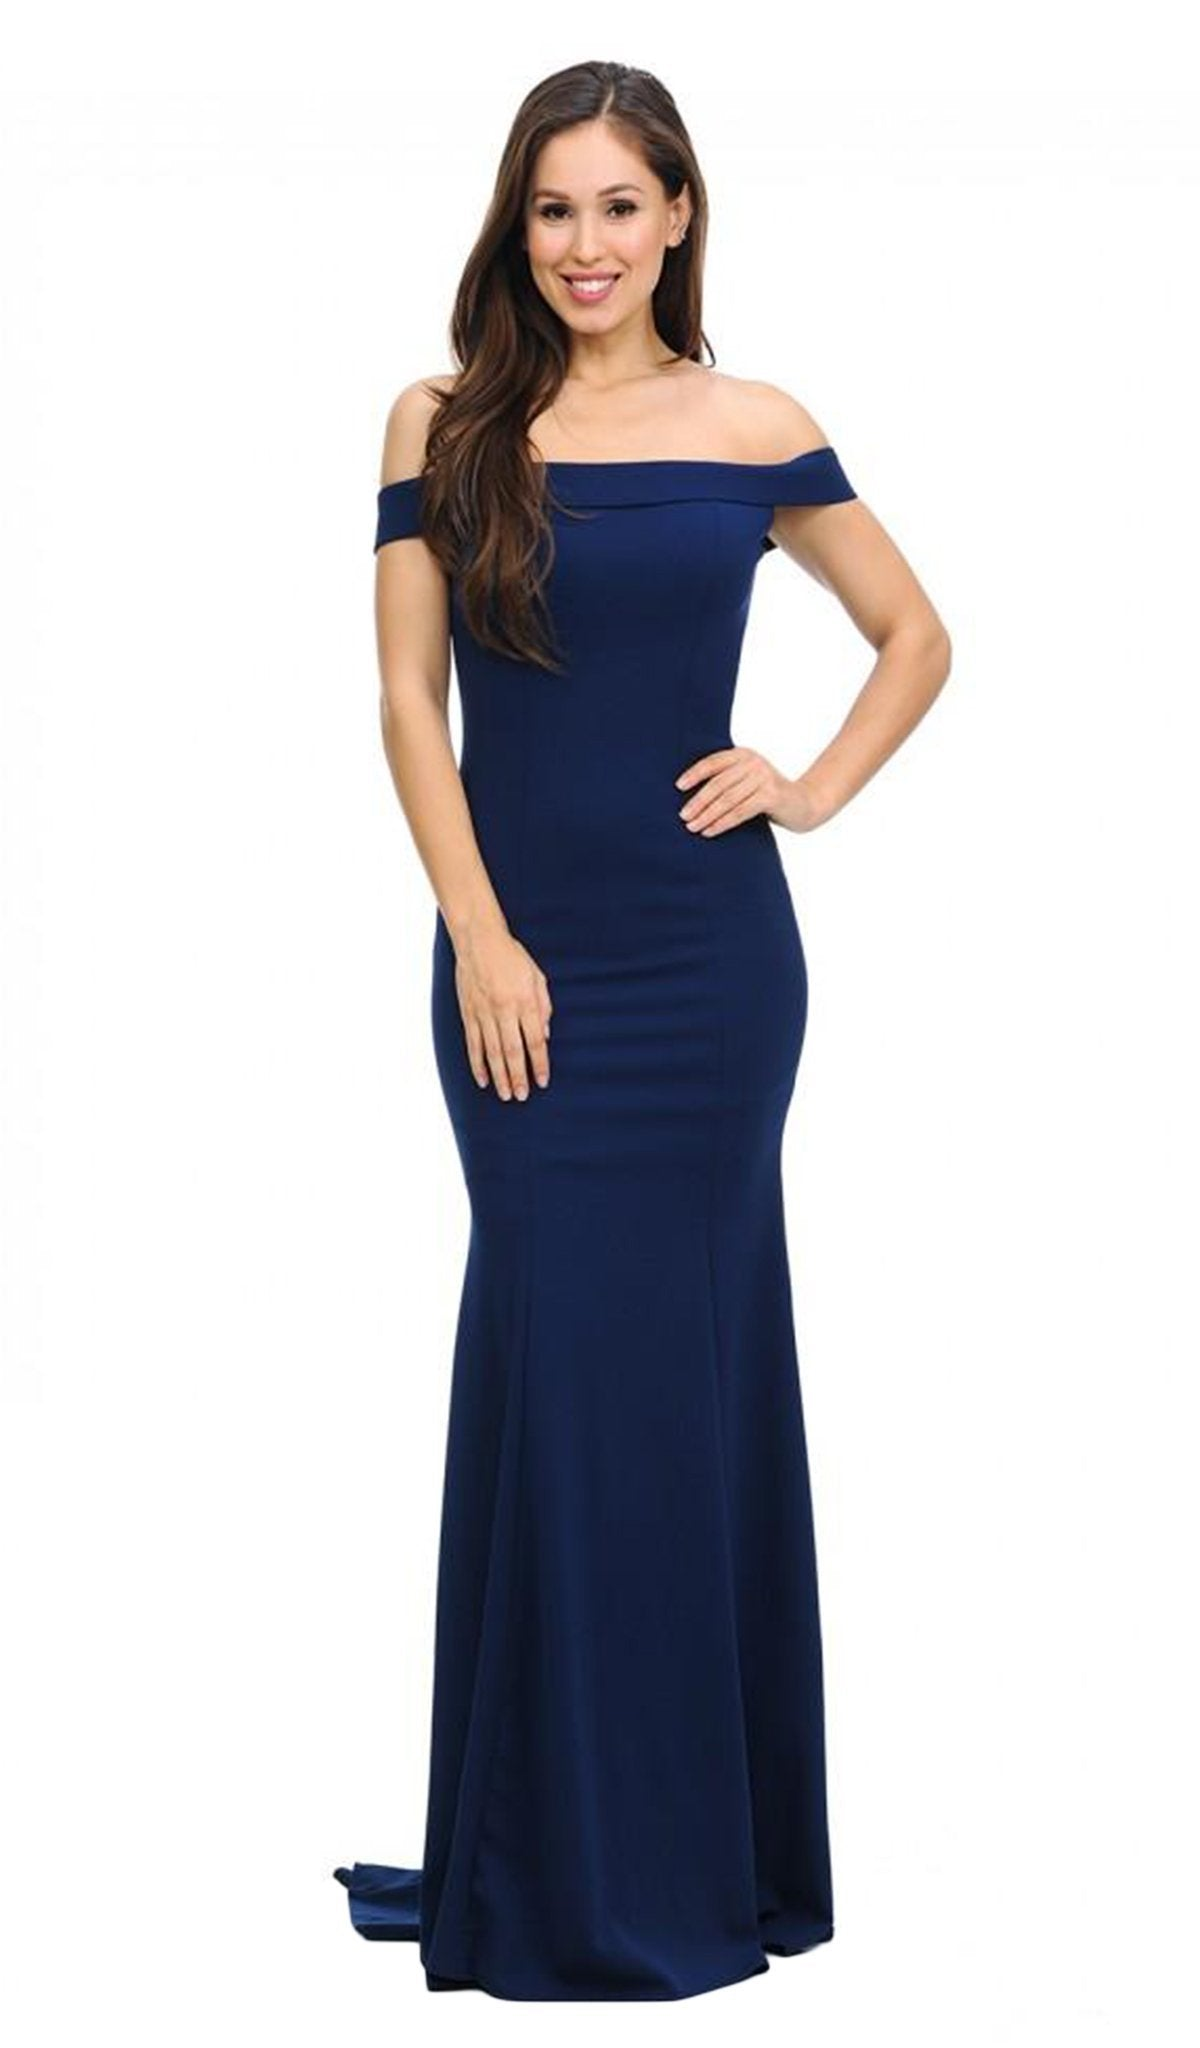 Lenovia - 5194SC Off The Shoulder Knit Crepe Mermaid Gown